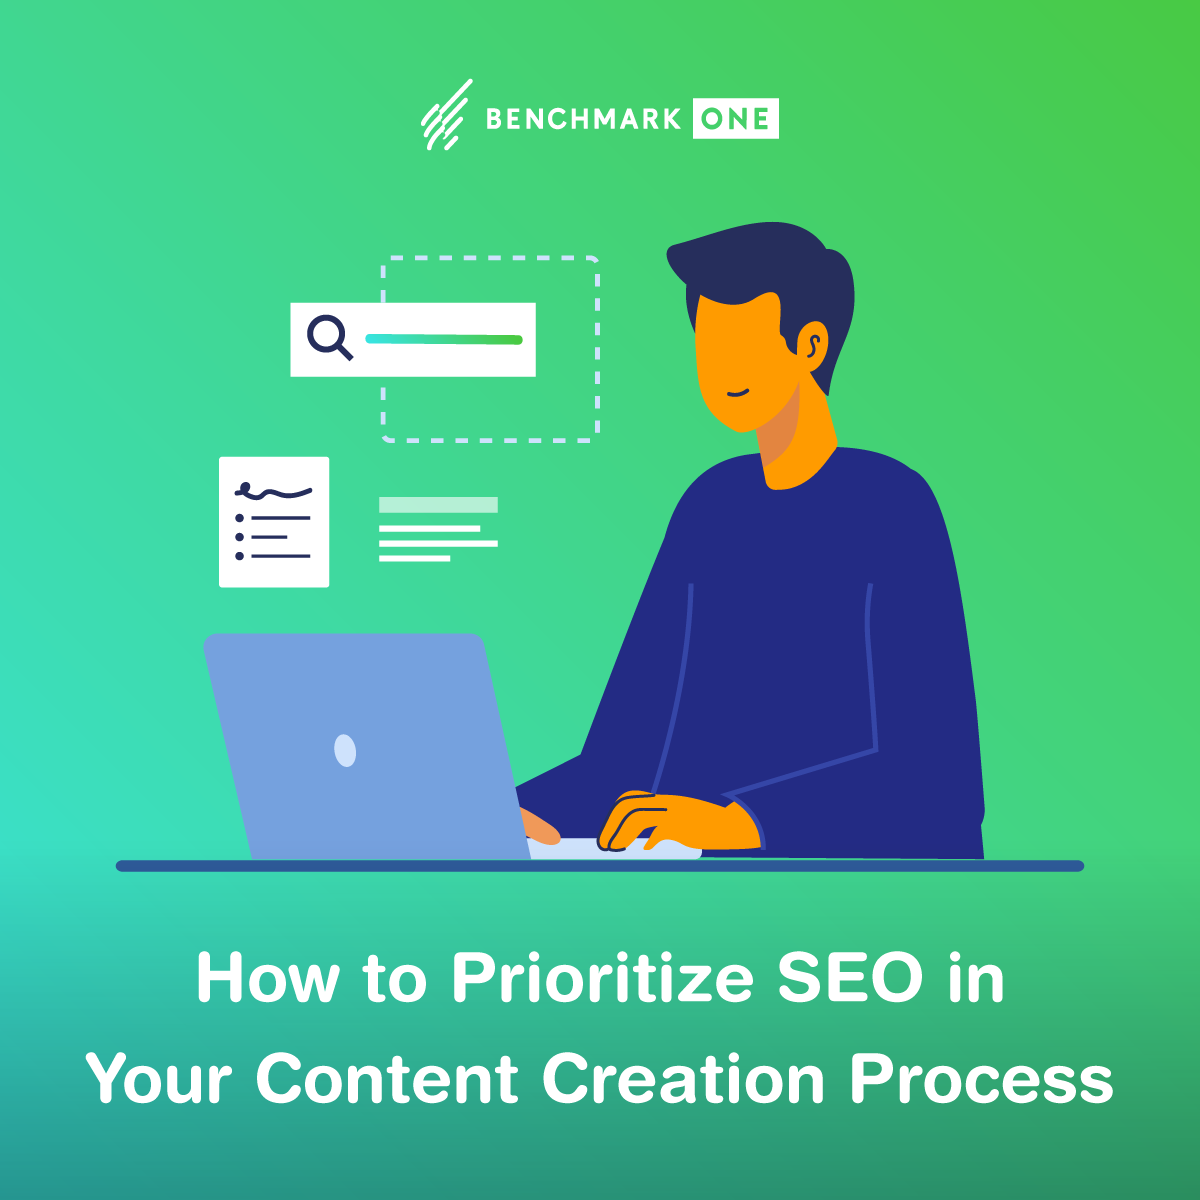 How to Prioritize SEO in Your Content Creation Process